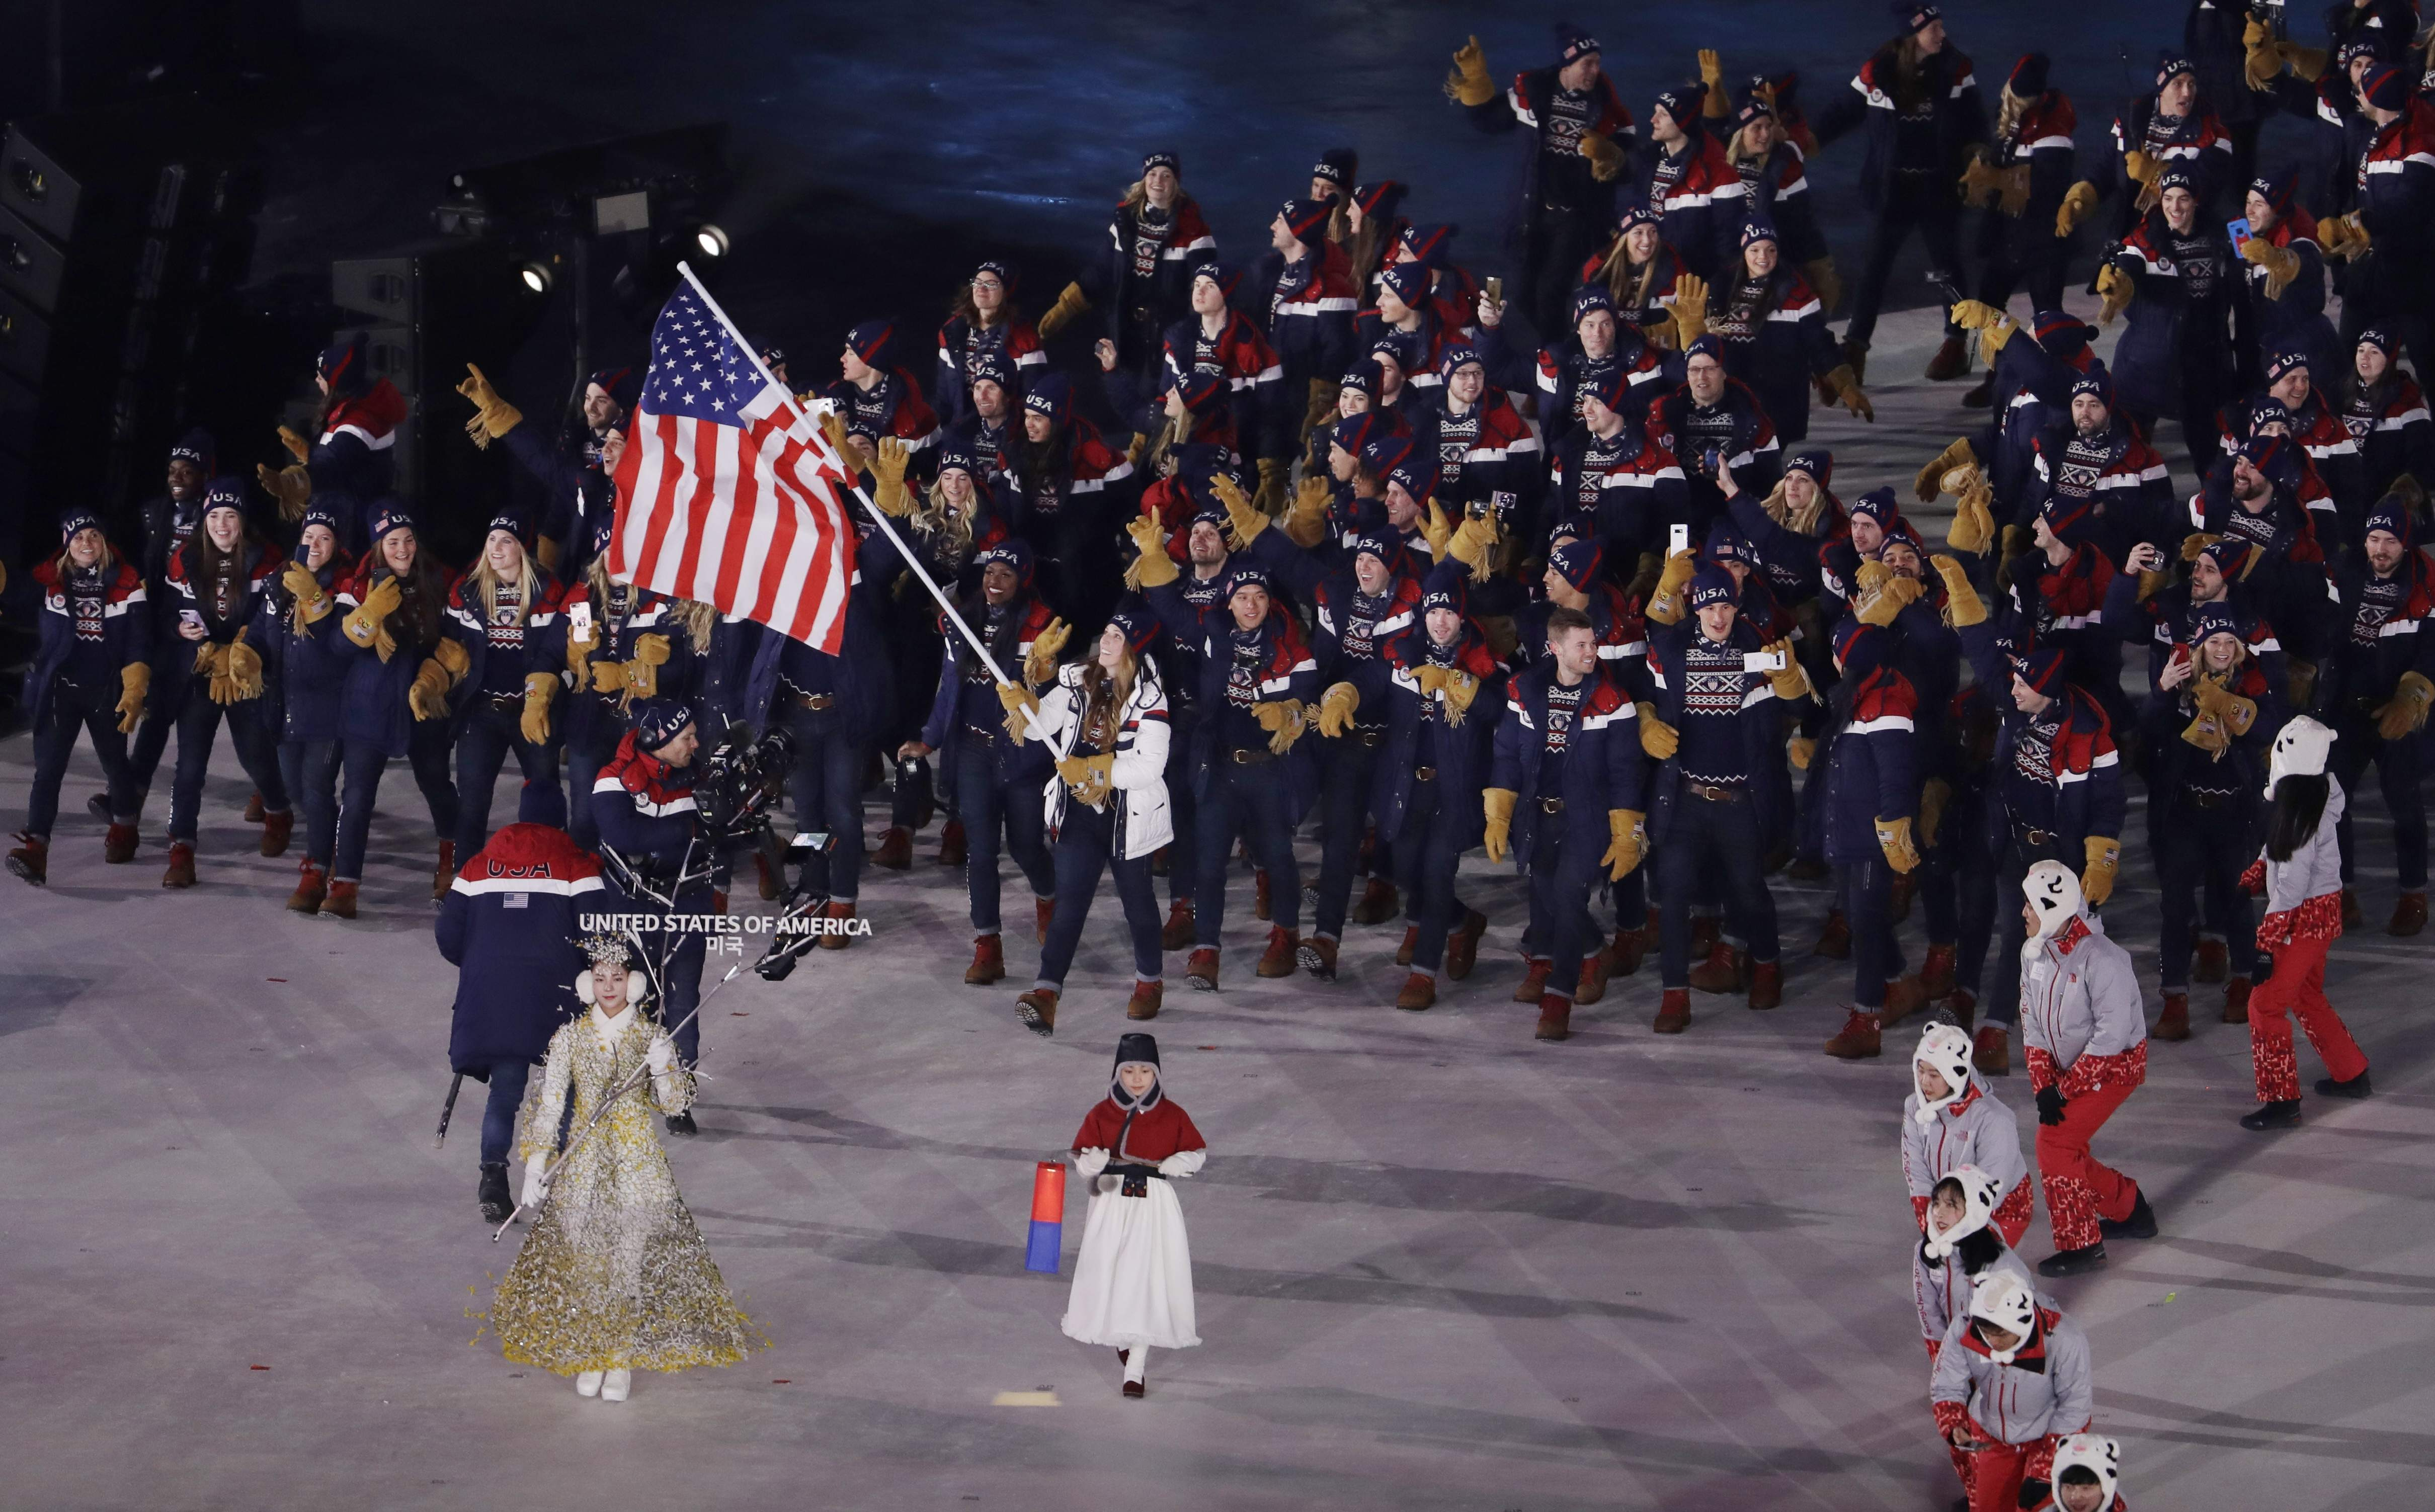 Erin Hamlin carries the flag of the United States during the opening ceremony of the 2018 Winter Olympics in Pyeongchang, South Korea, Friday, Feb. 9, 2018. (AP Photo/Natacha Pisarenko)